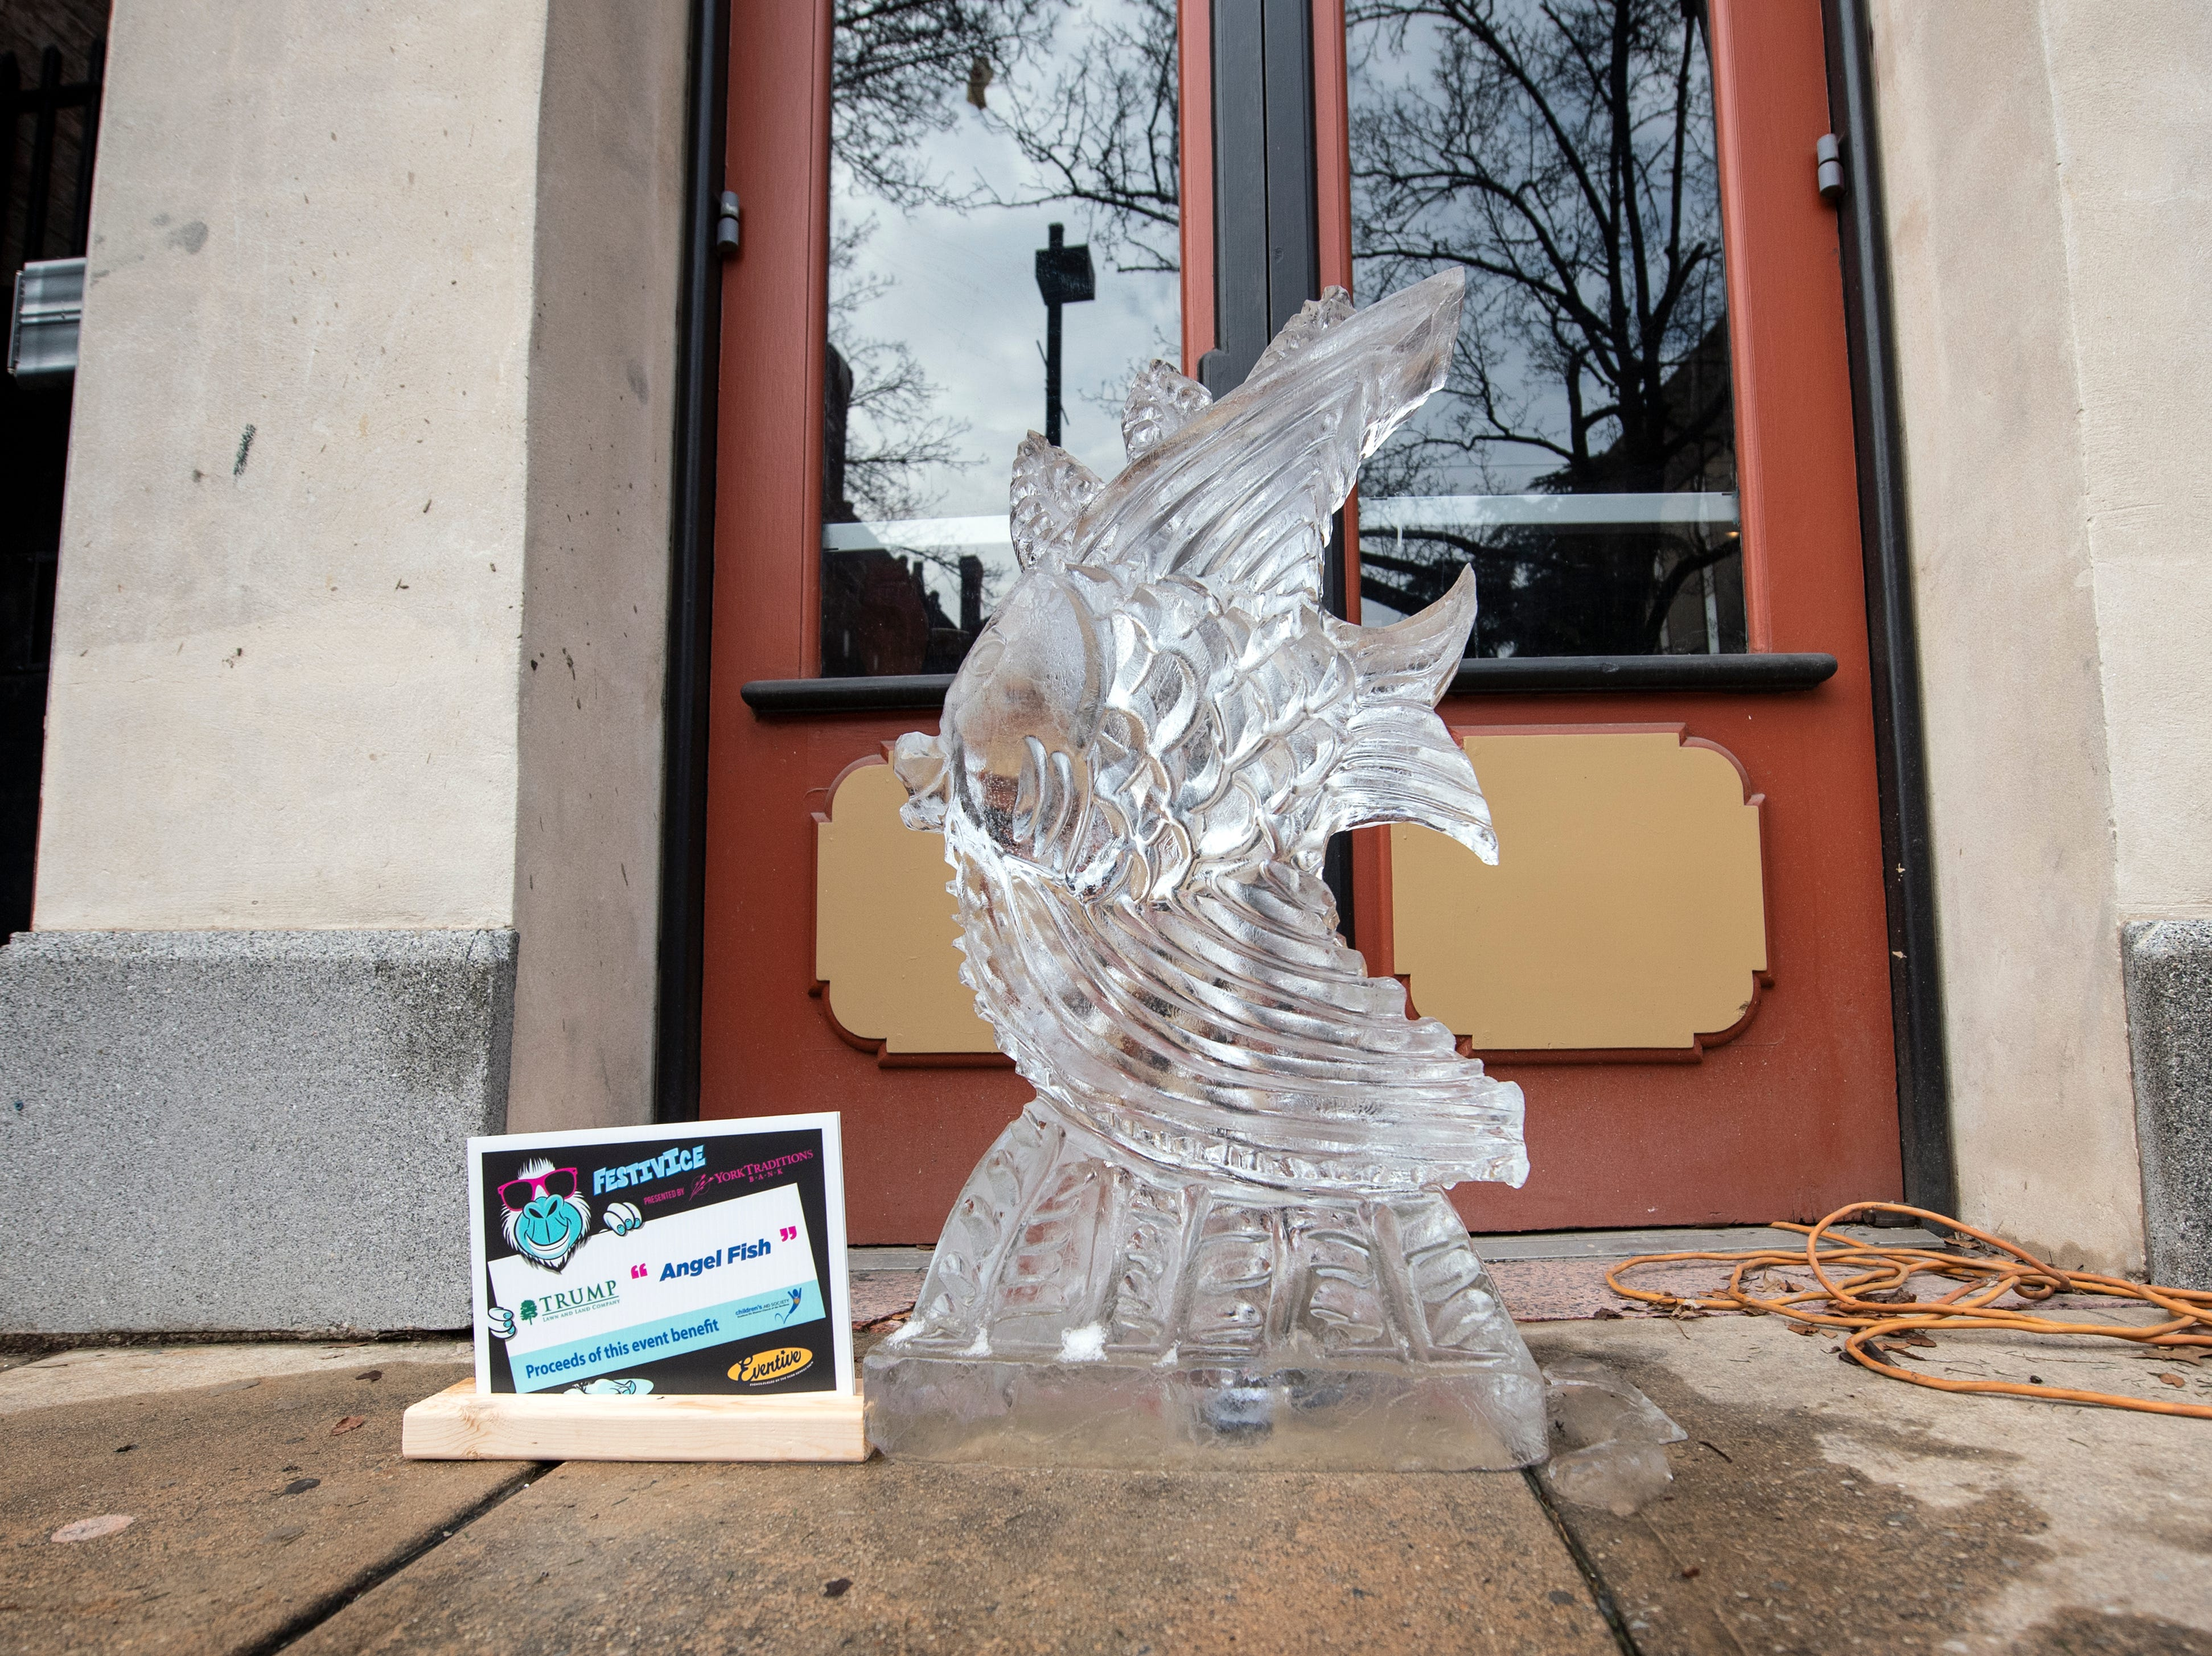 'Angel Fish' is one of many ice sculptures downtown, Friday, Jan. 18, 2019. The FestivICE ice festival has interactive ice sculptures, an ice slide and more. The three-day event ends Saturday.